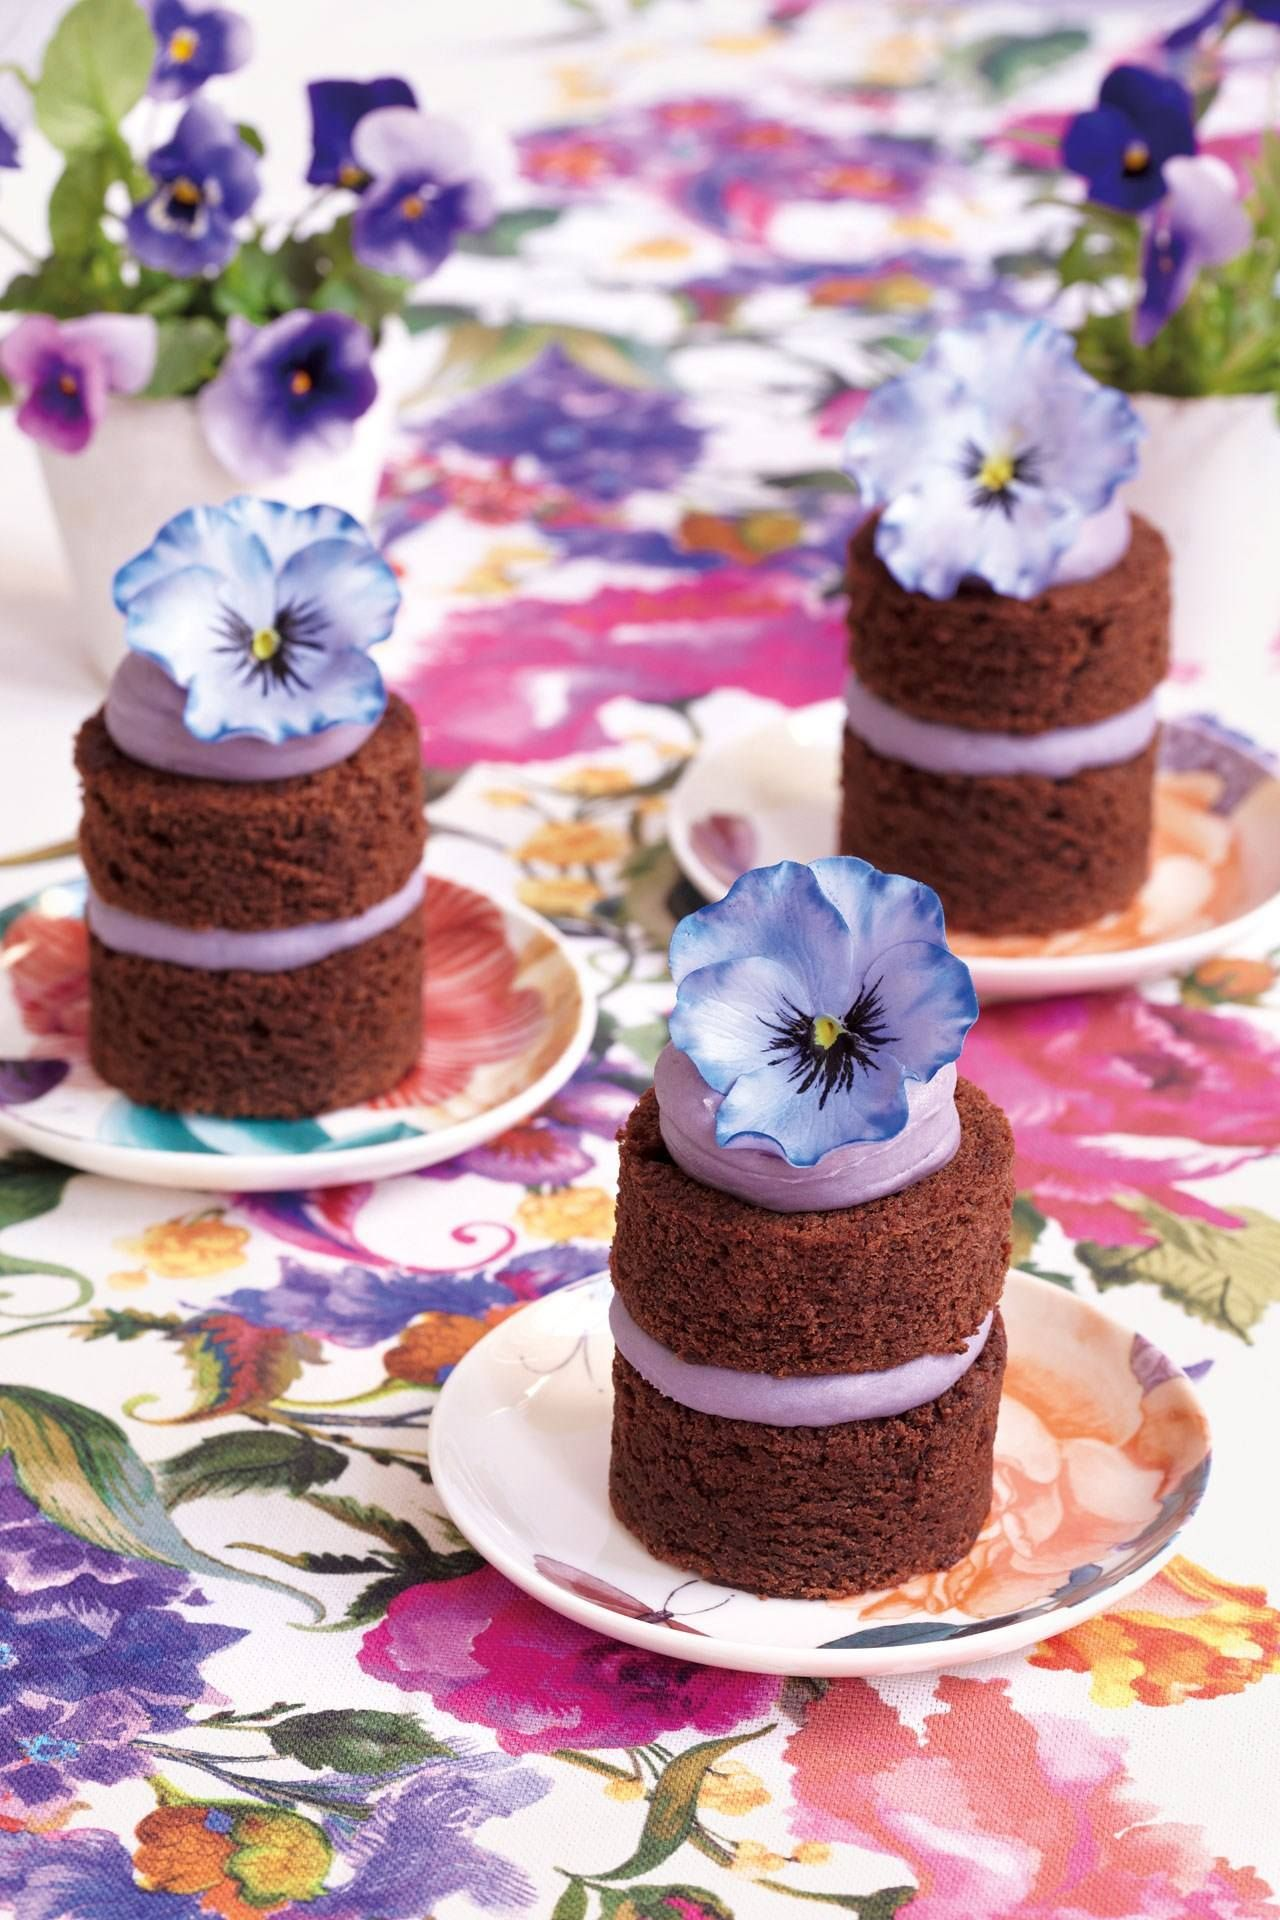 Individual layers cakes